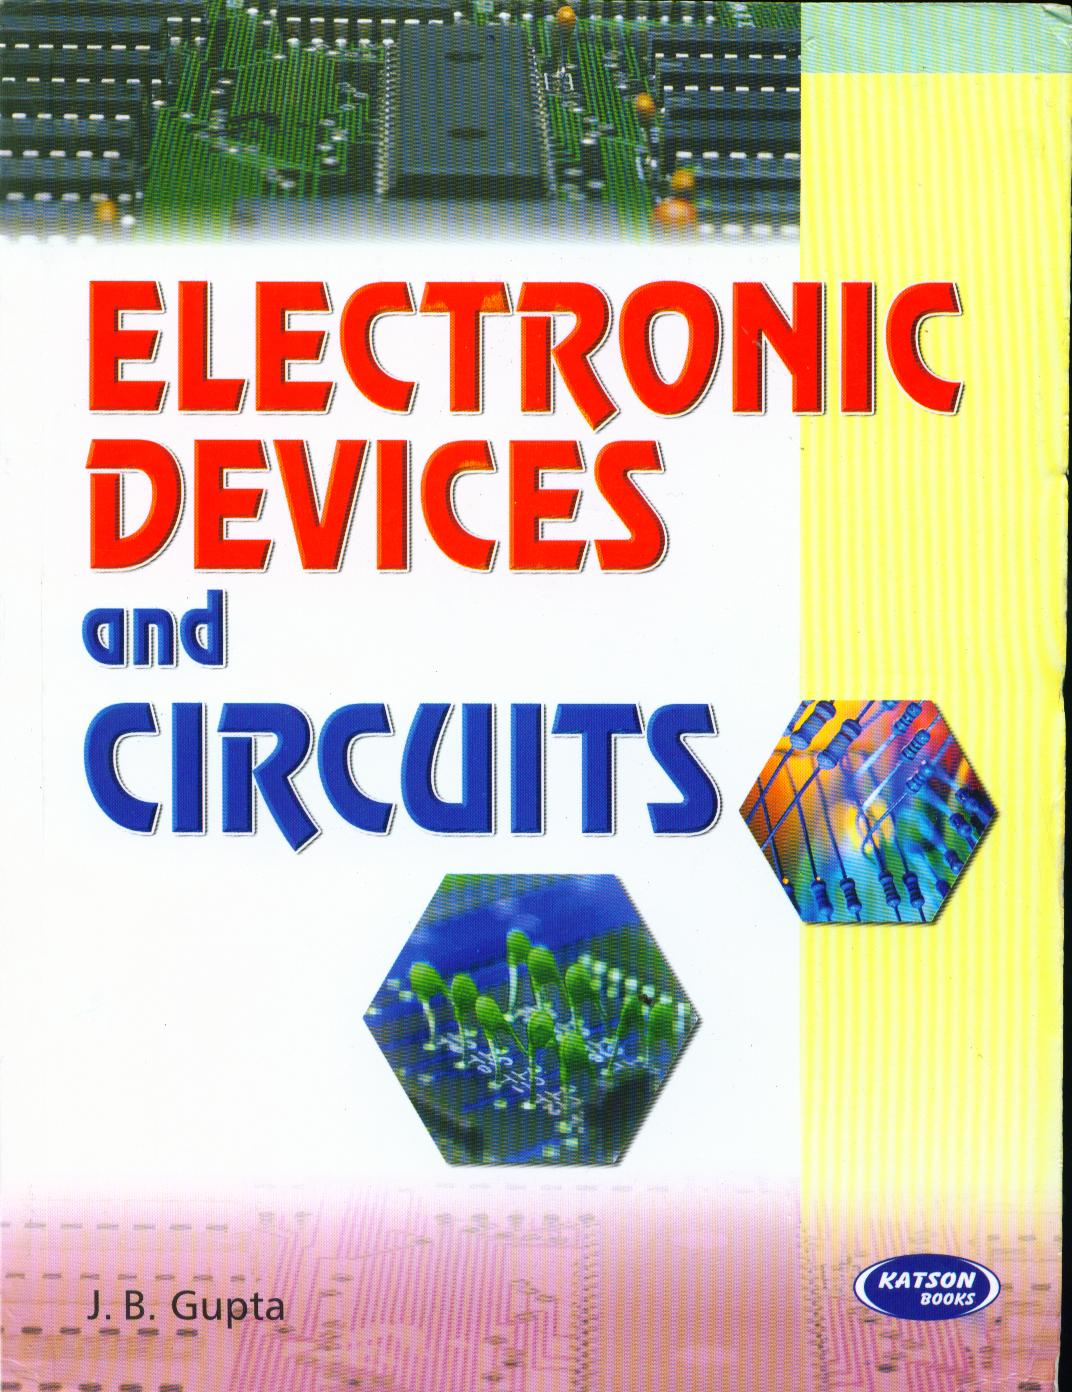 PDF] EC8353 Electron Devices and Circuits Lecture Notes, Books